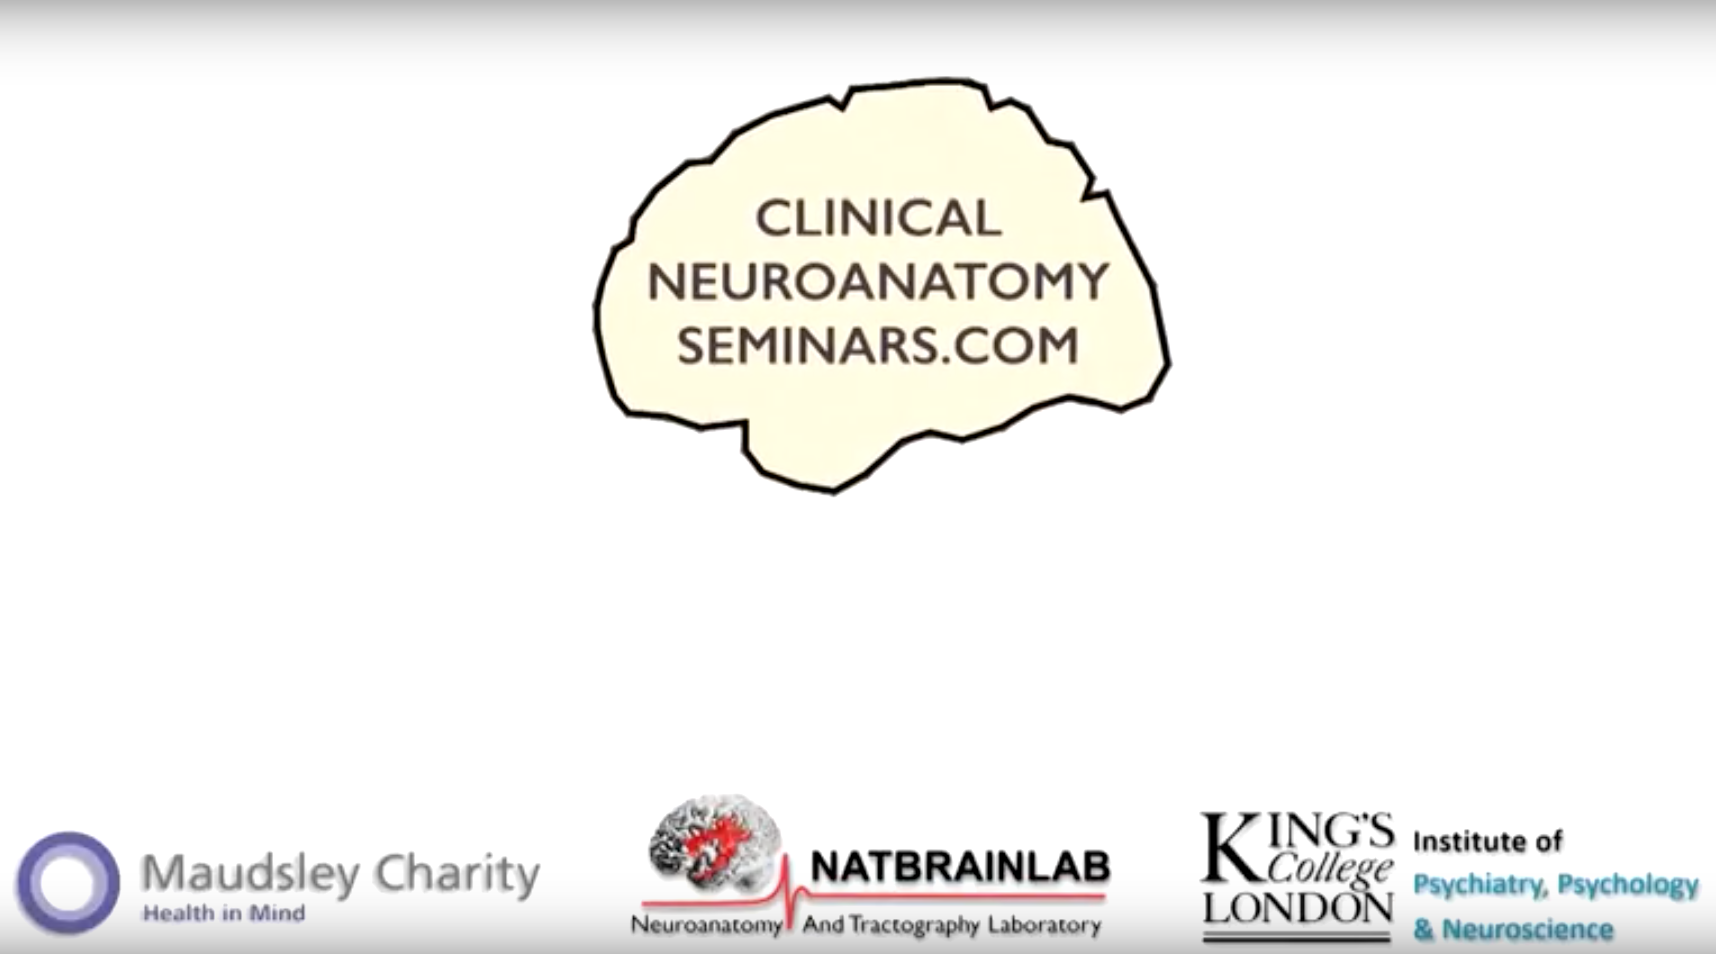 Watch Dr. Thompson speak on the neurobiology of language recovery in stroke-induced aphasia